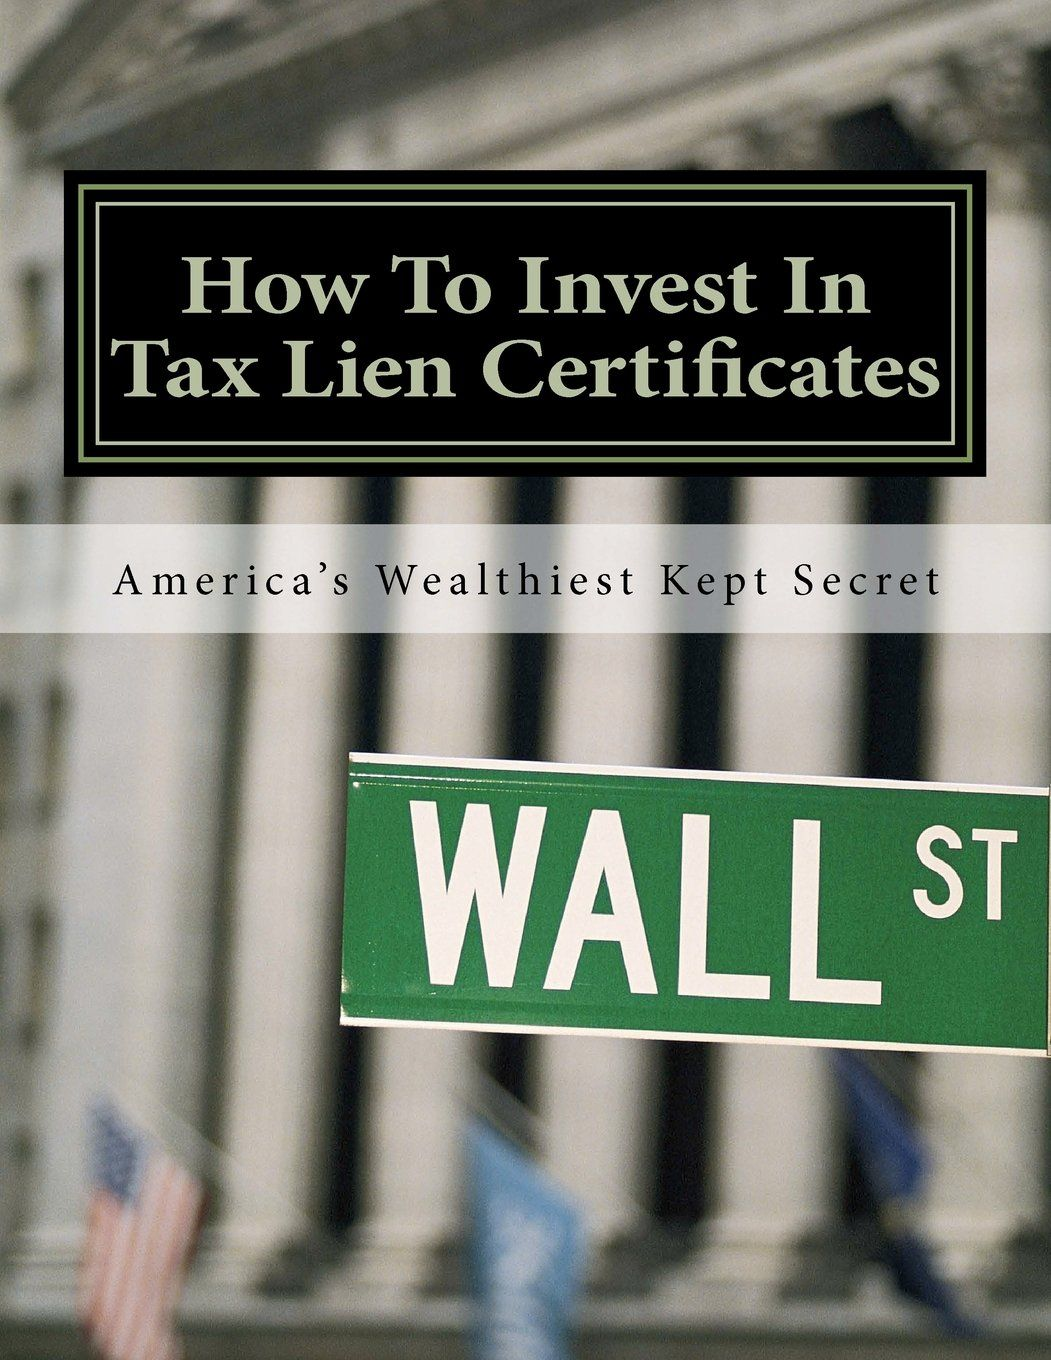 Learn Where And How To Buy Tax Lien Certificates And Earn Up To 300